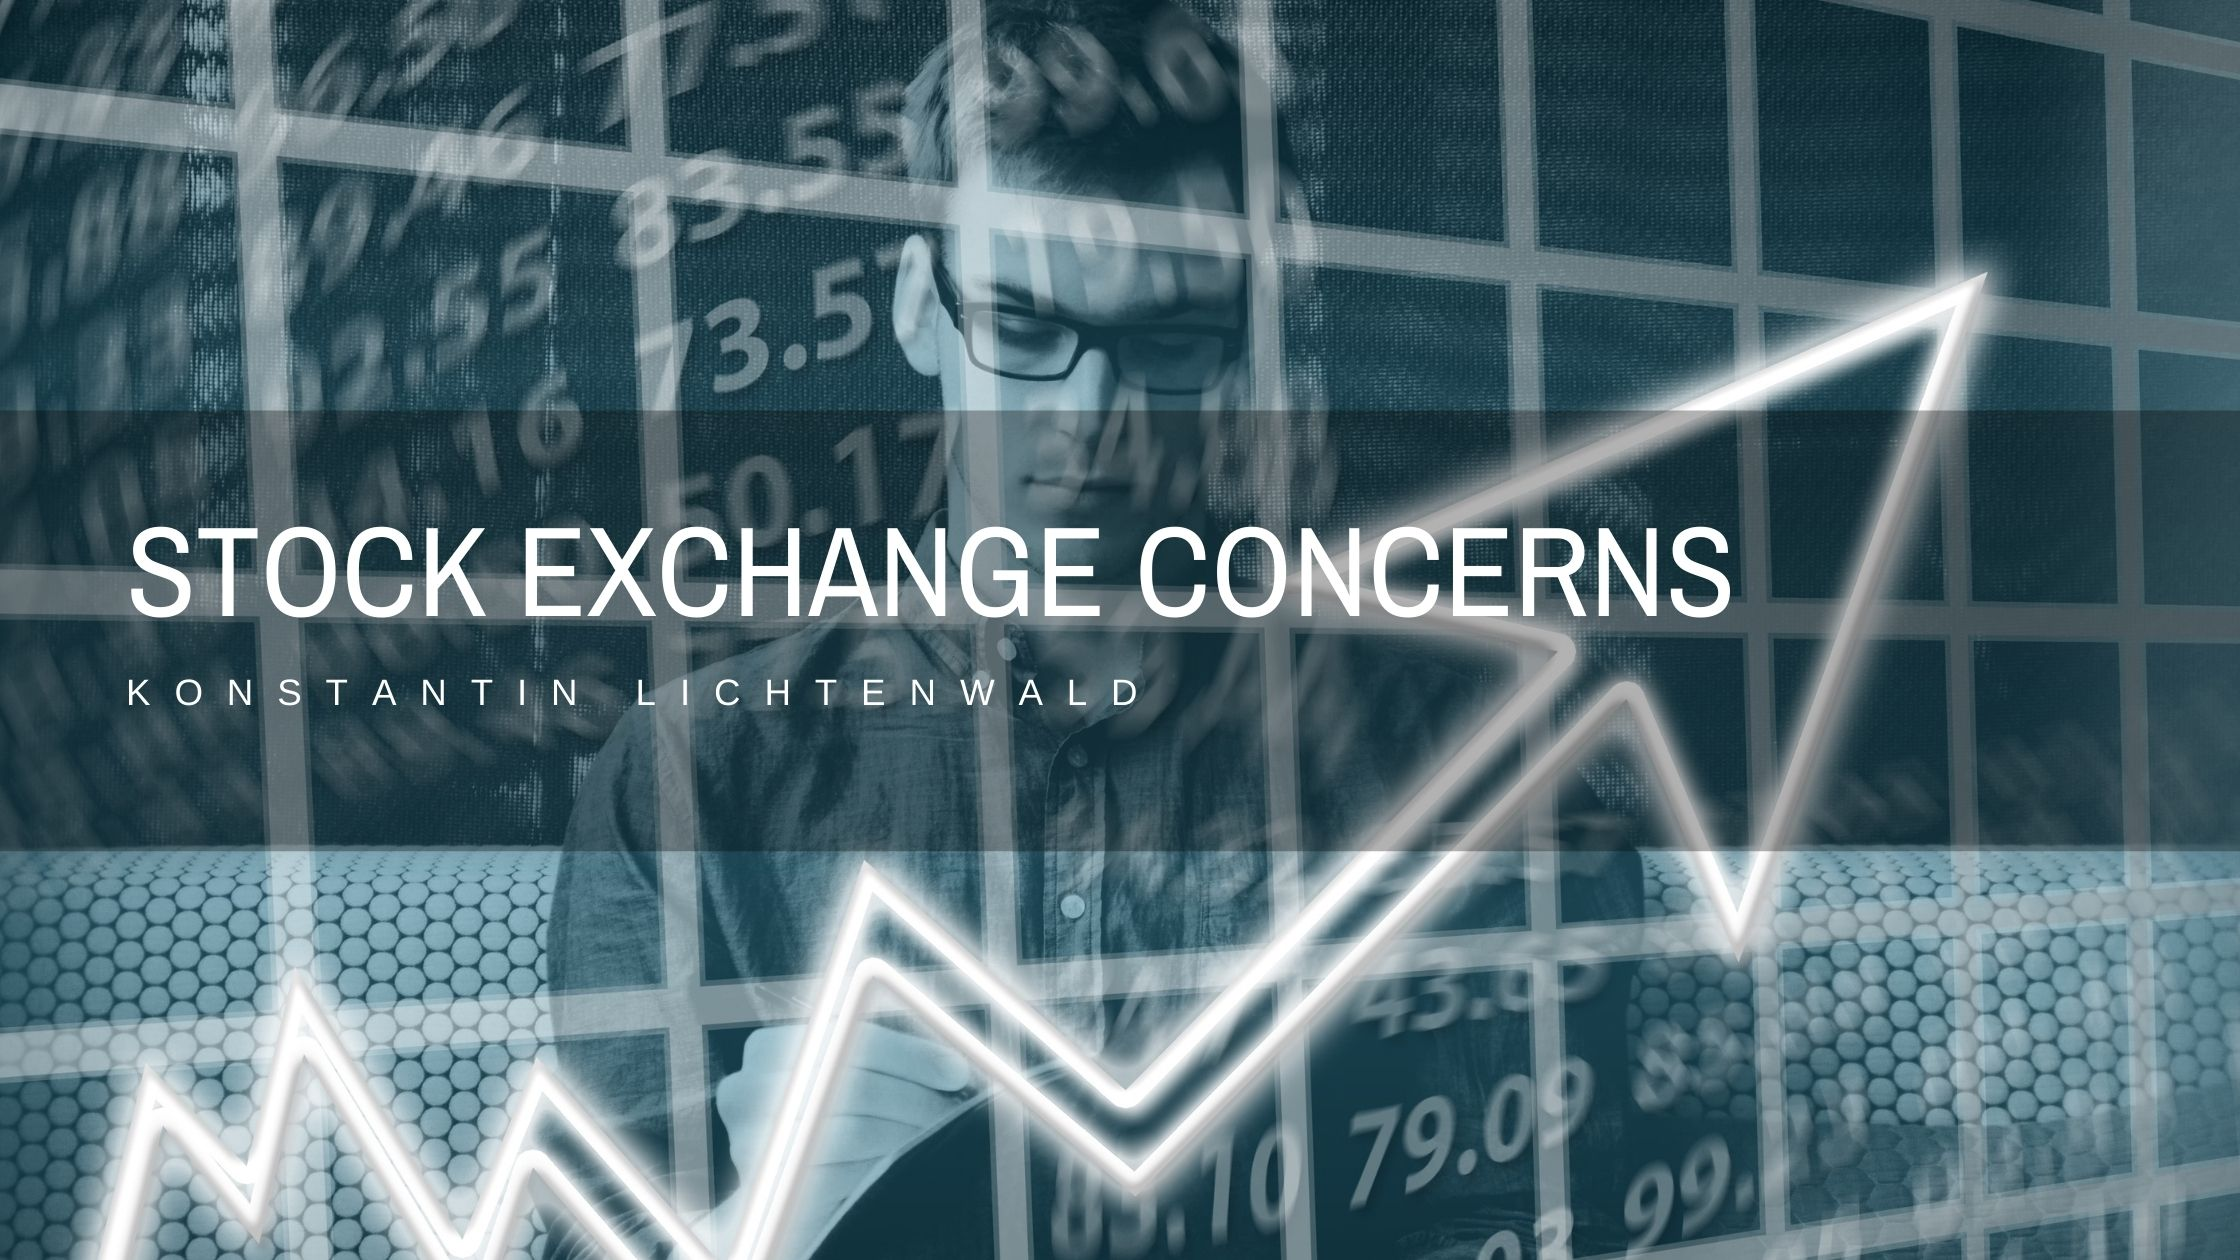 Konstantin Lichtenwald Examines Stock Exchange Concerns During COVID